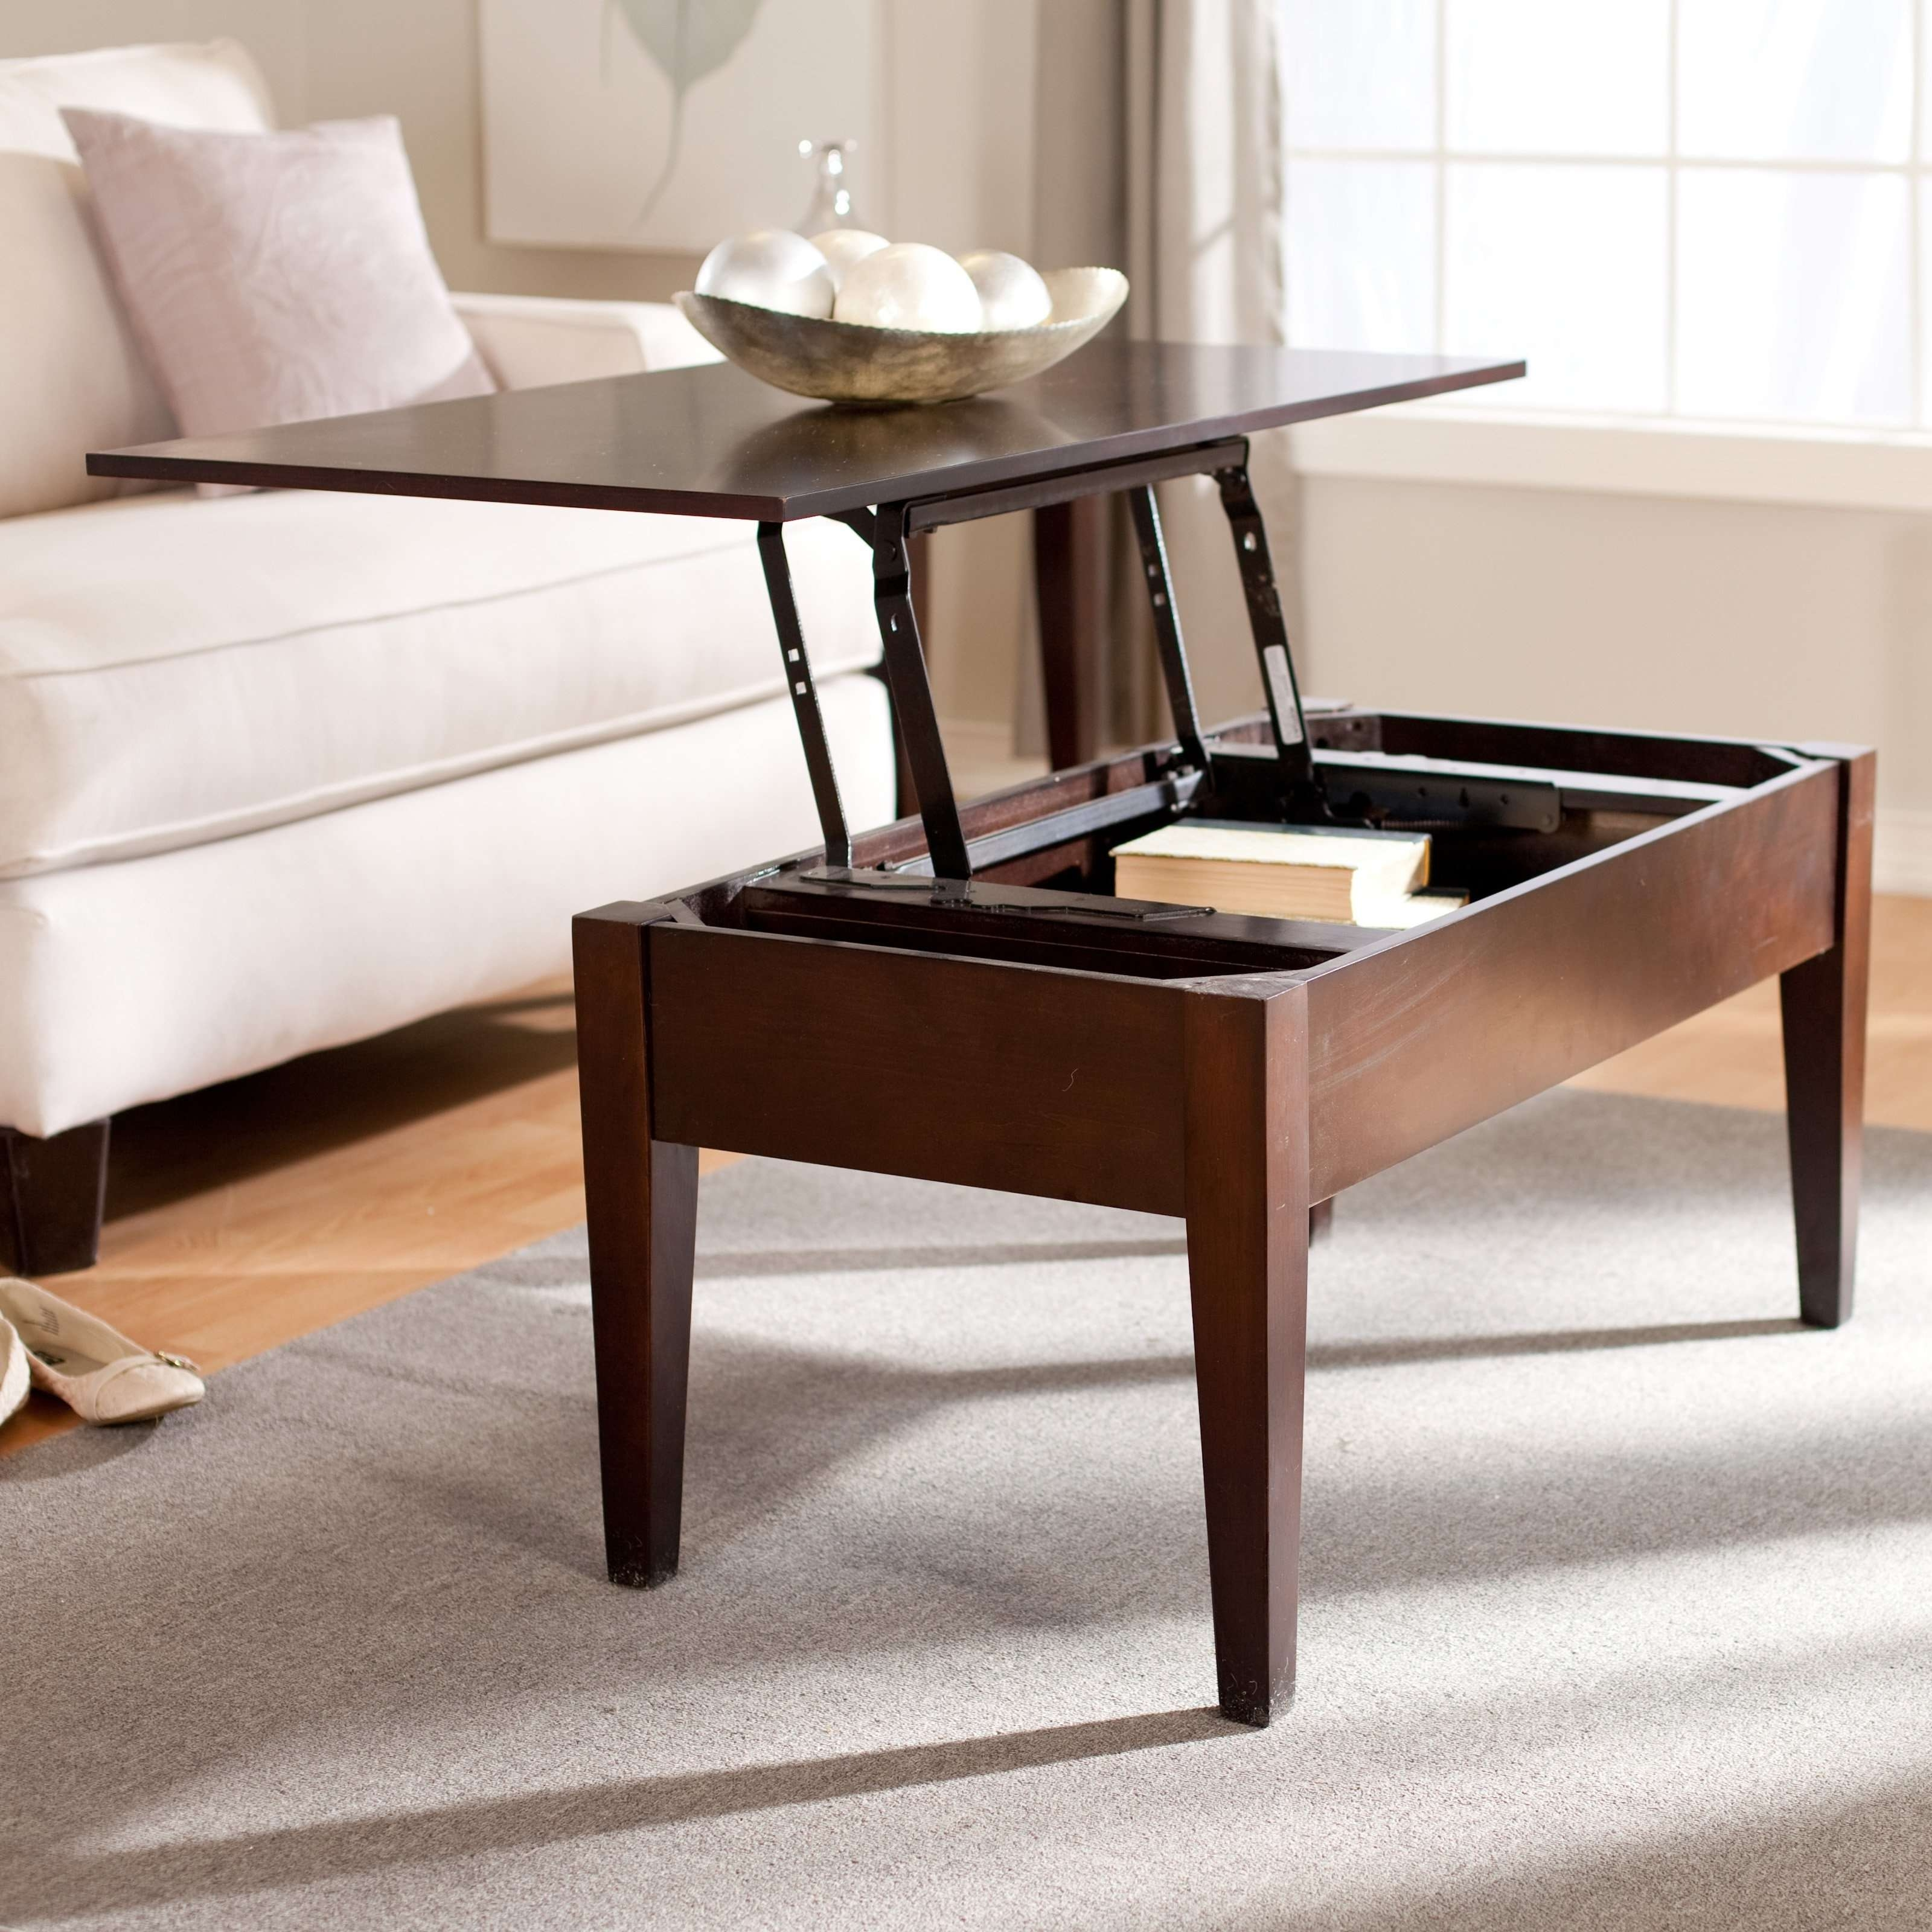 Famous Space Coffee Tables Pertaining To Best Coffee Tables For Small Spaces : Coffee Table For Small Space (View 12 of 20)